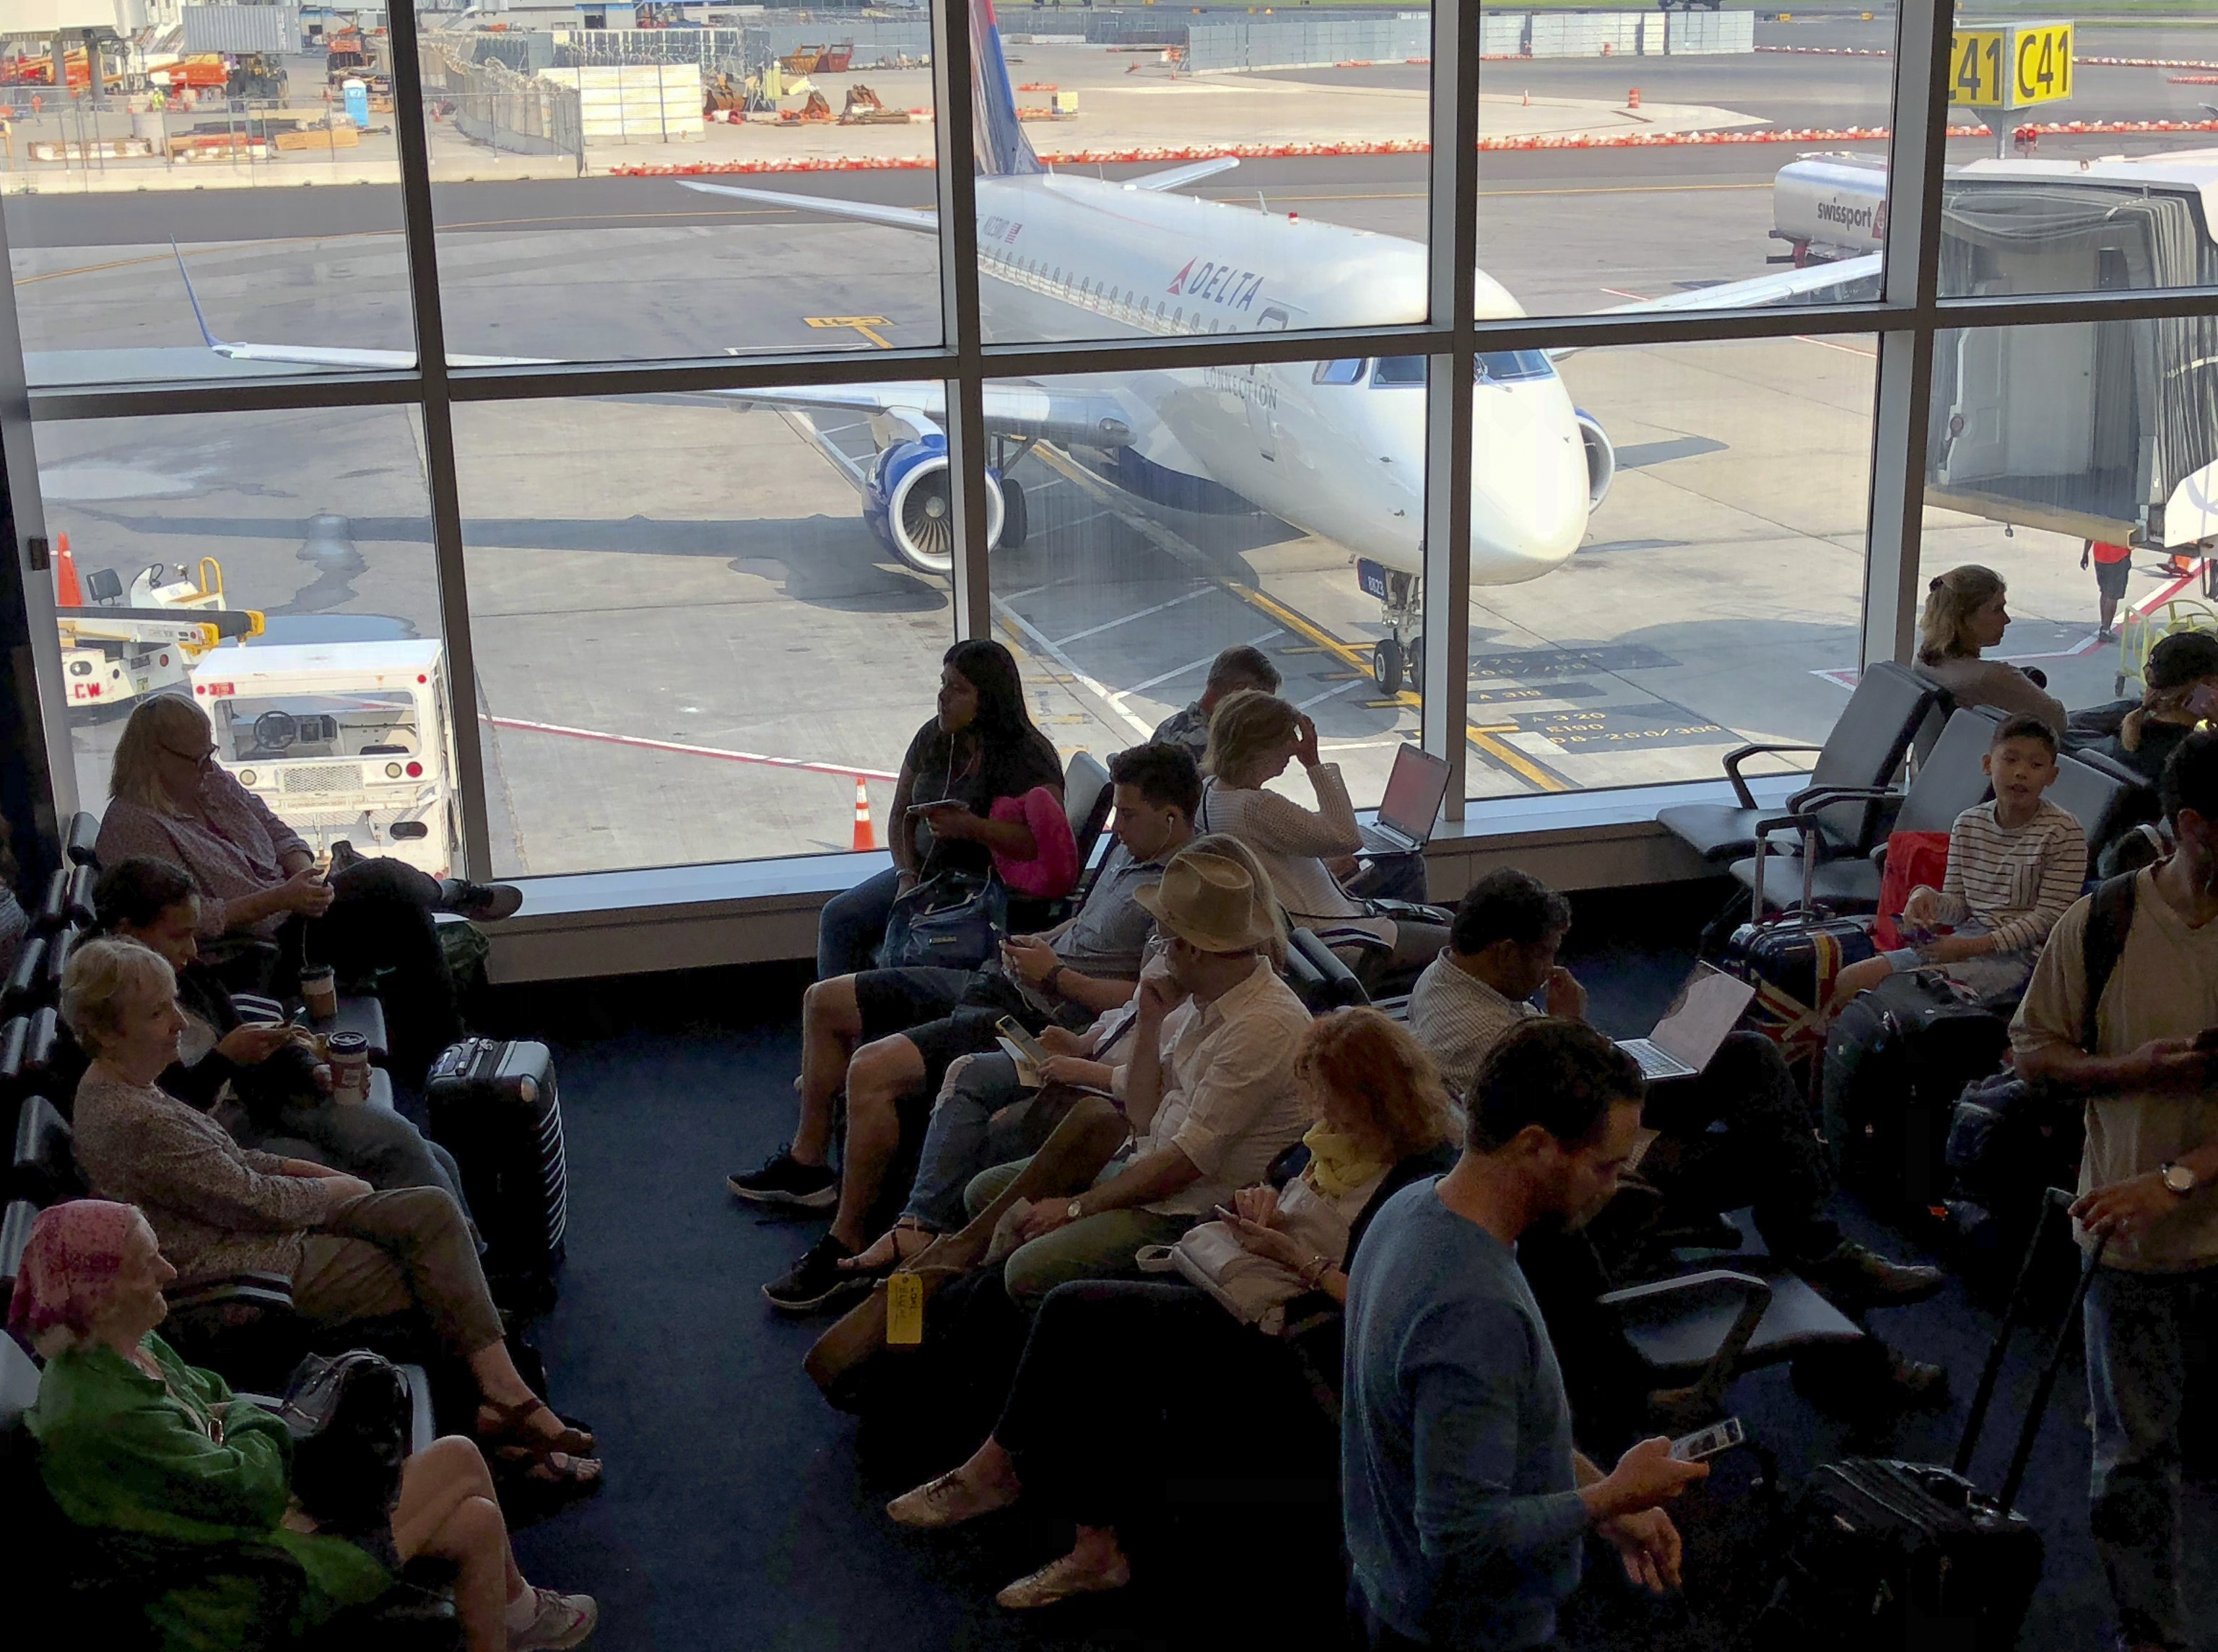 Passengers wait to board a Delta airlines plane at La Guardia  International Airport in New York on July 28, 2018.